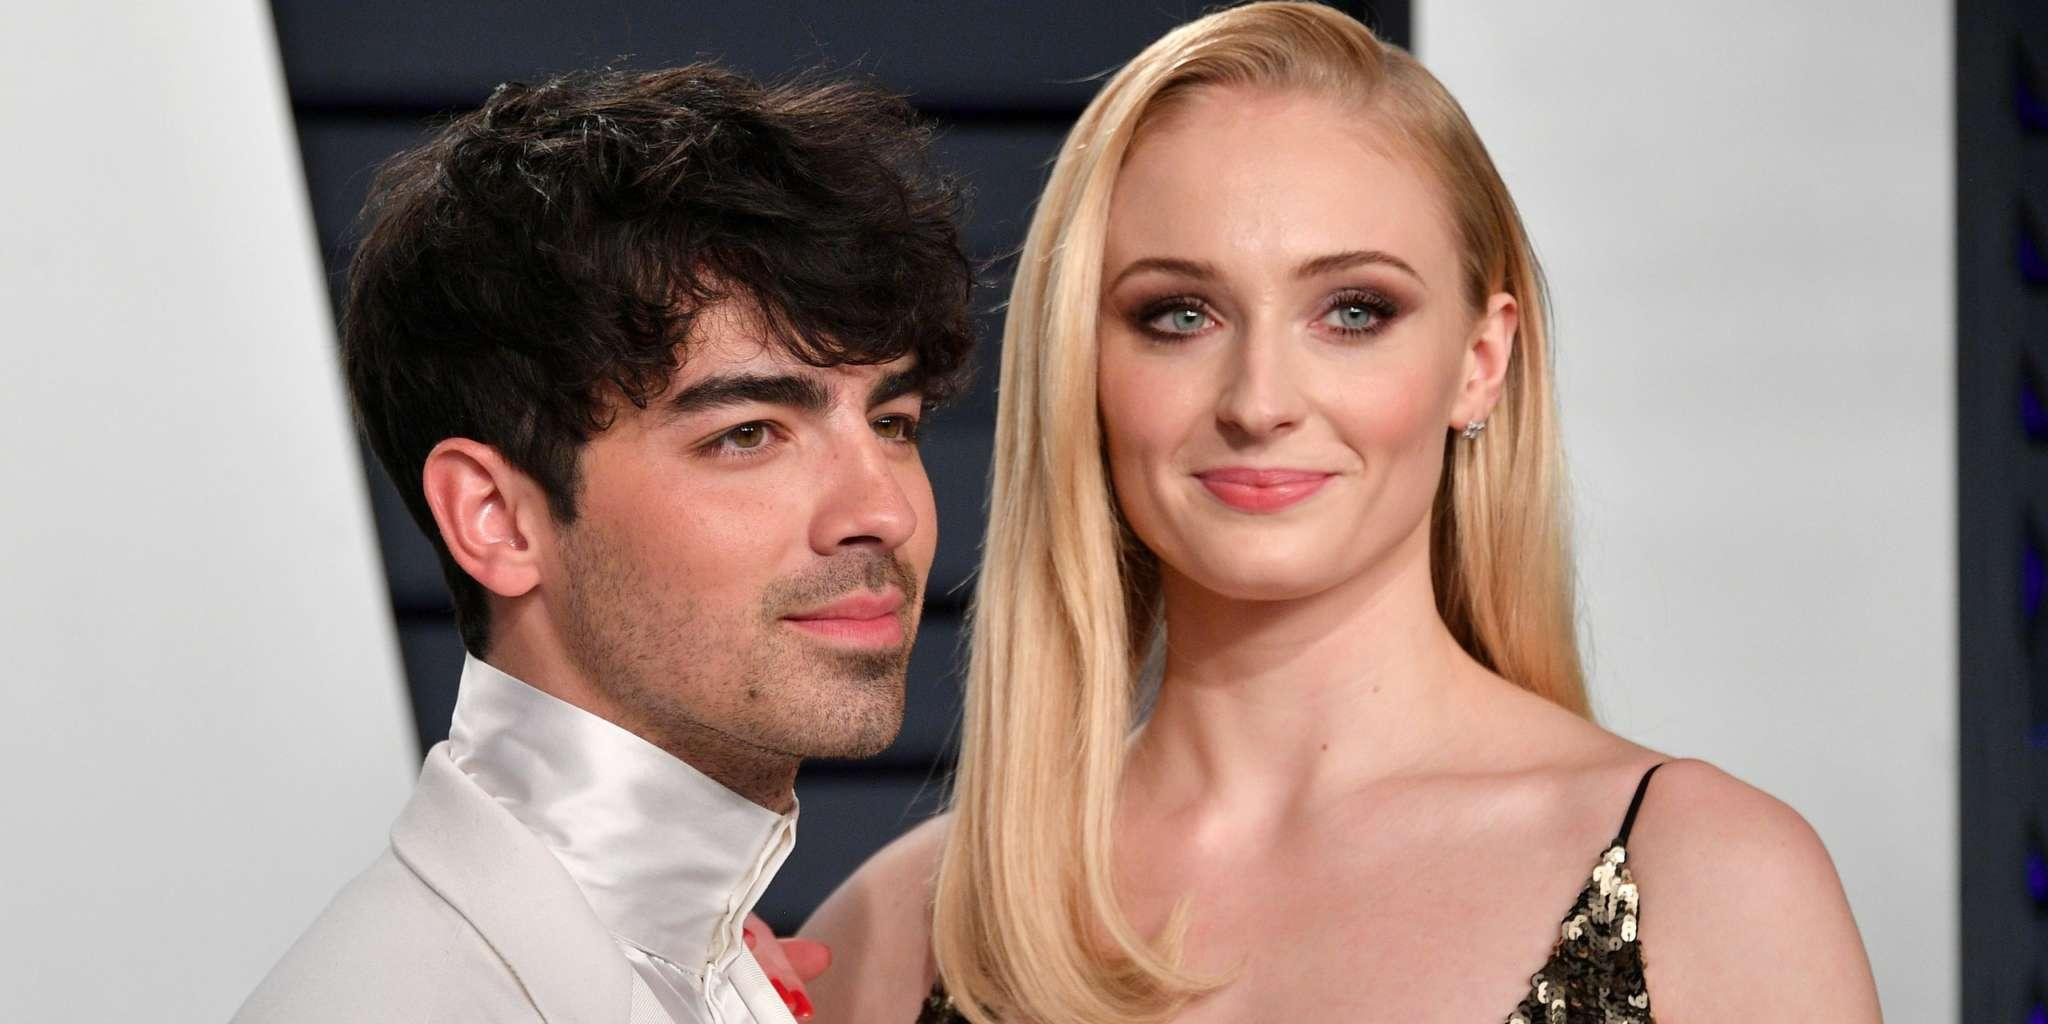 Sophie Turner Applies Makeup On Her Husband Joe Jonas While In Quarantine And The Result Is Pretty Impressive - Check Out The Pics!